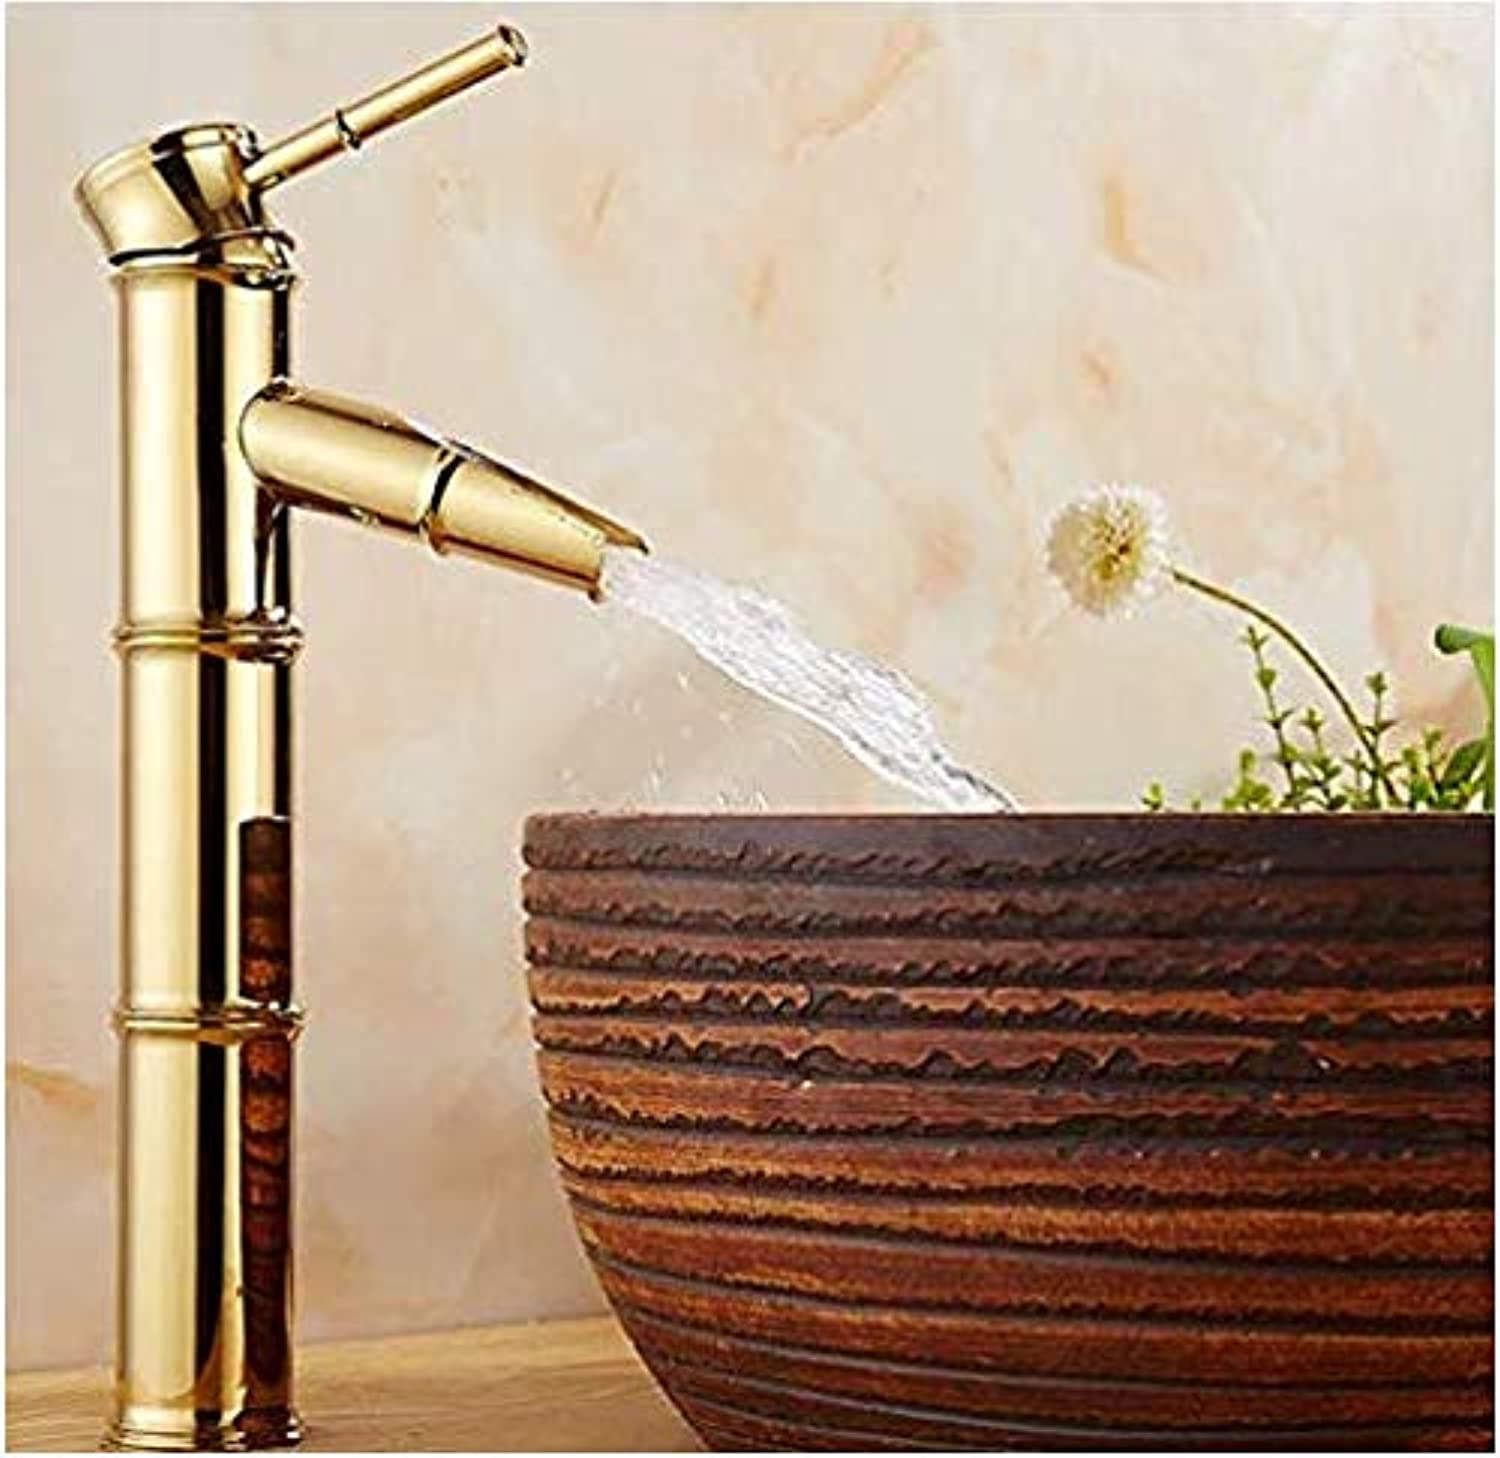 Kitchen Fauct Bathroom Faucet Copper European Hot and Cold Basin Washbasin Above Counter Basin Single Hole Bathroom Wash Basin redating Faucet